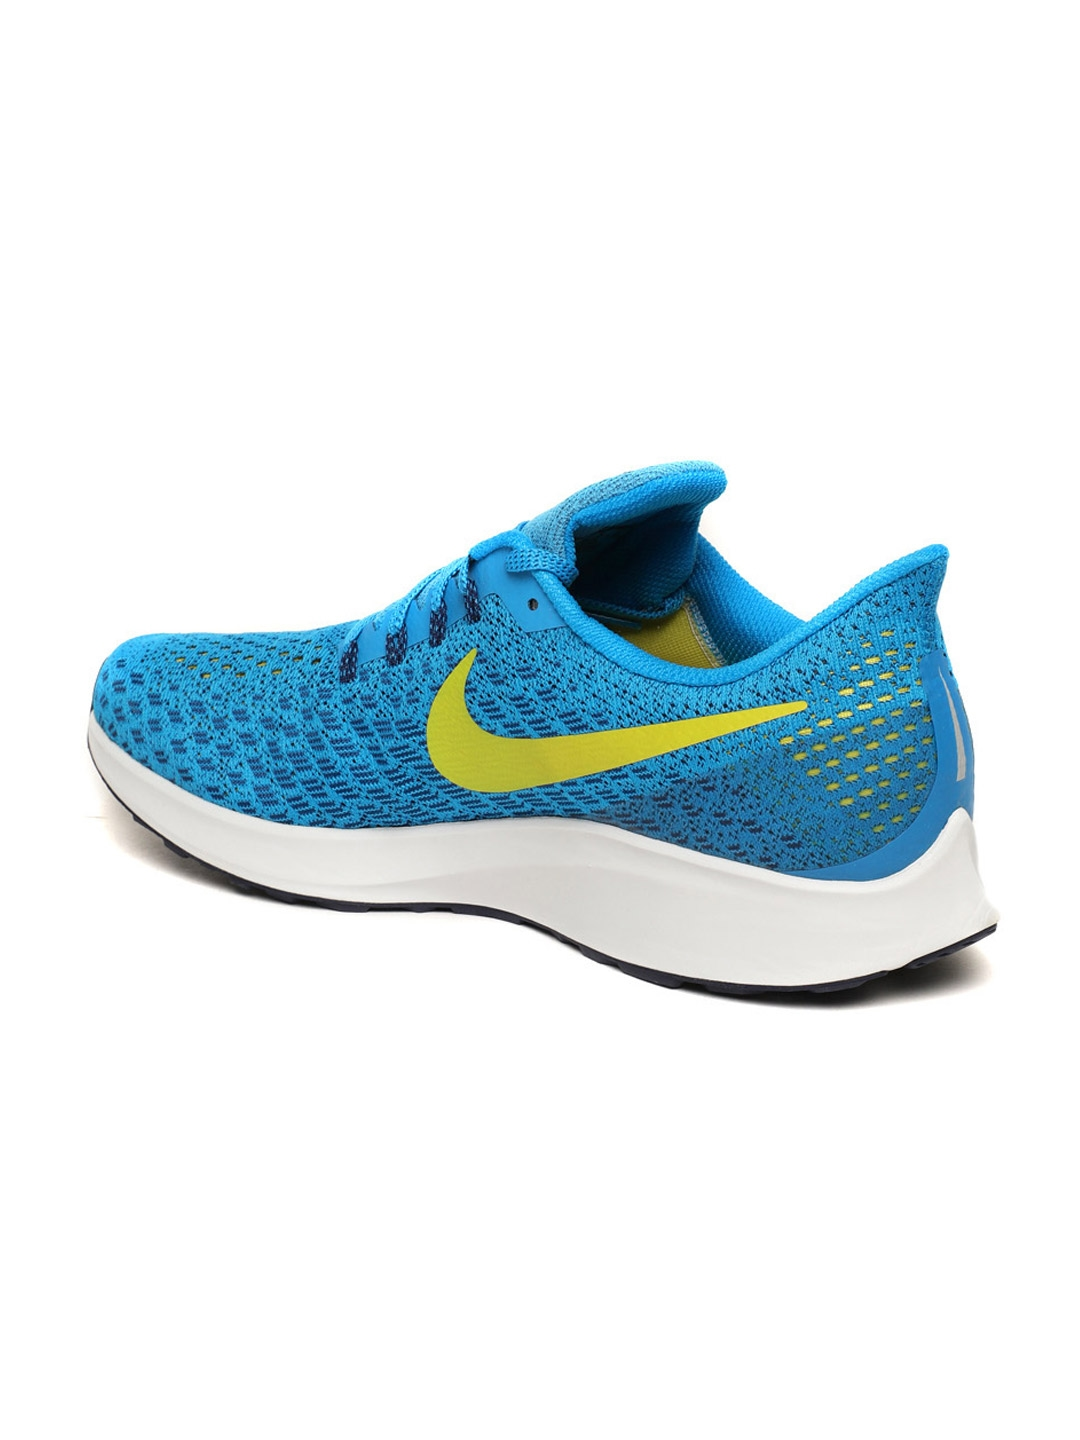 92f5d1ed7e38a Buy Nike Men Blue Air Zoom Pegasus 35 Running Shoes - Sports Shoes ...